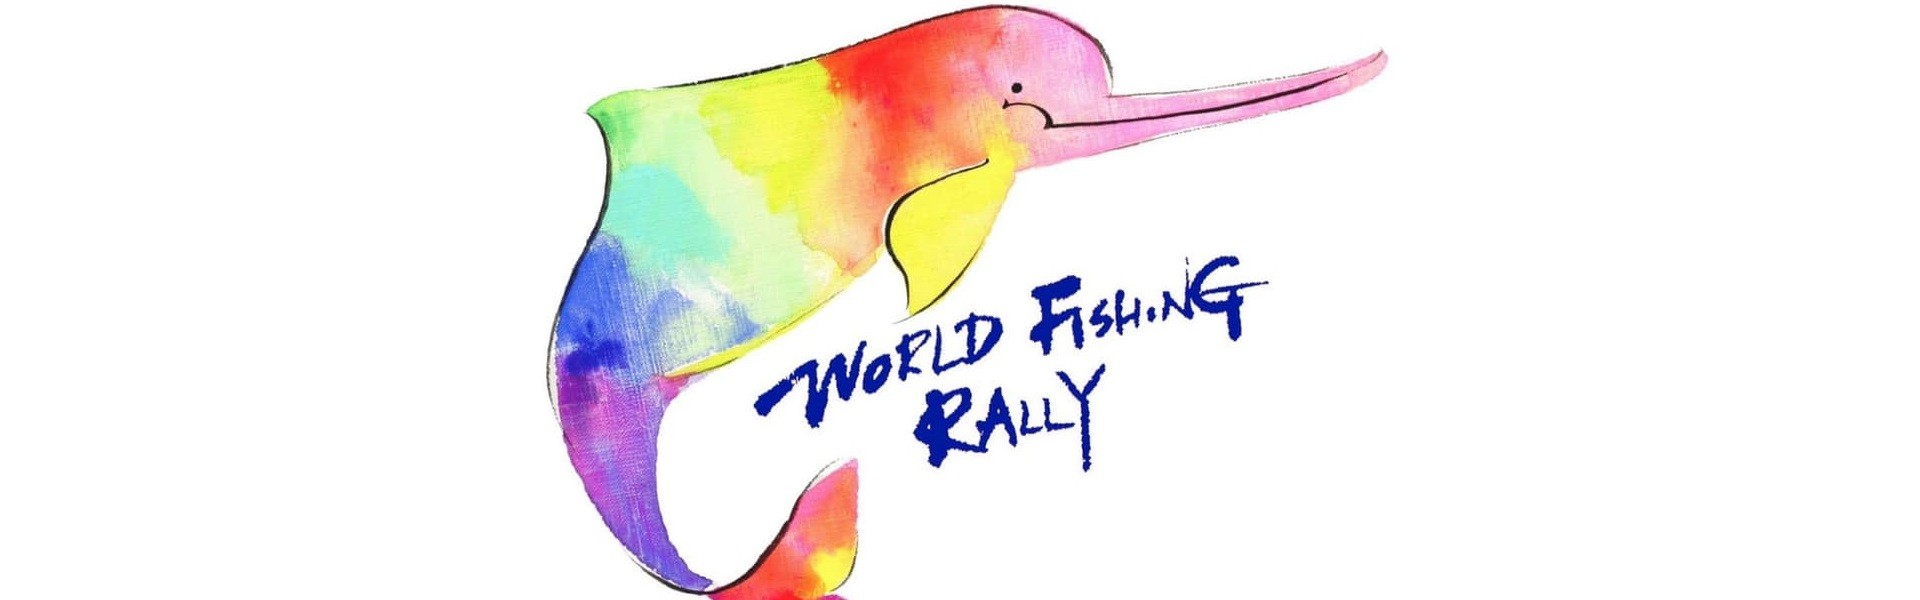 Great Amazon World Fishing Rally